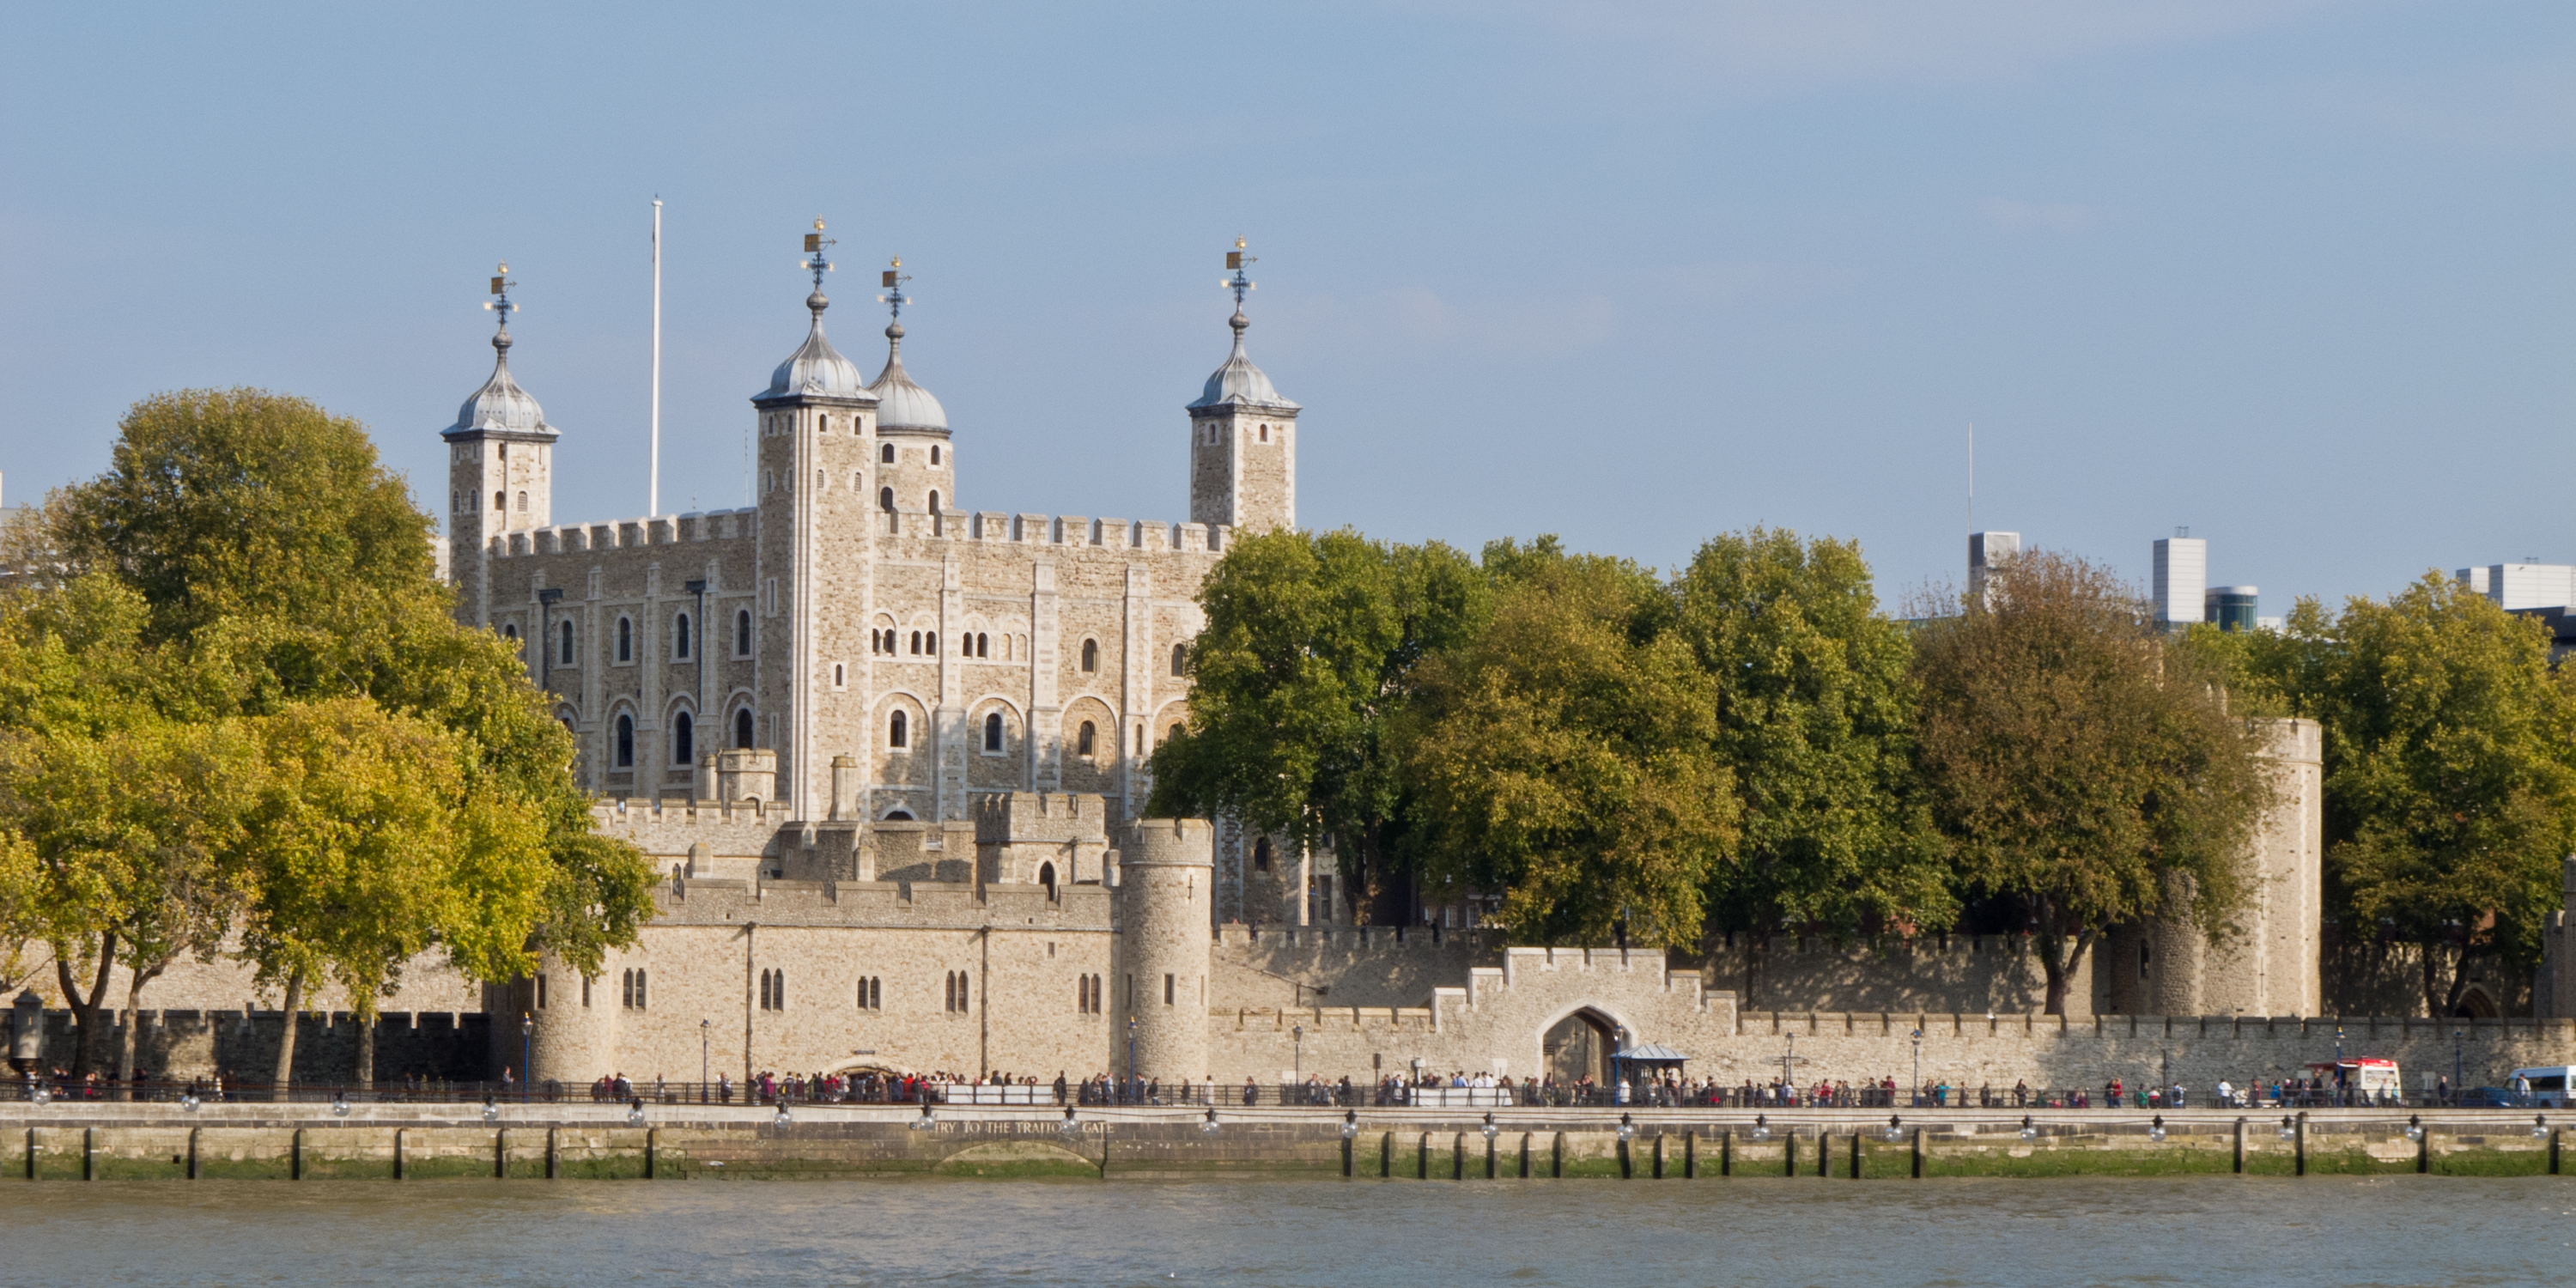 Tower_of_London_-_01